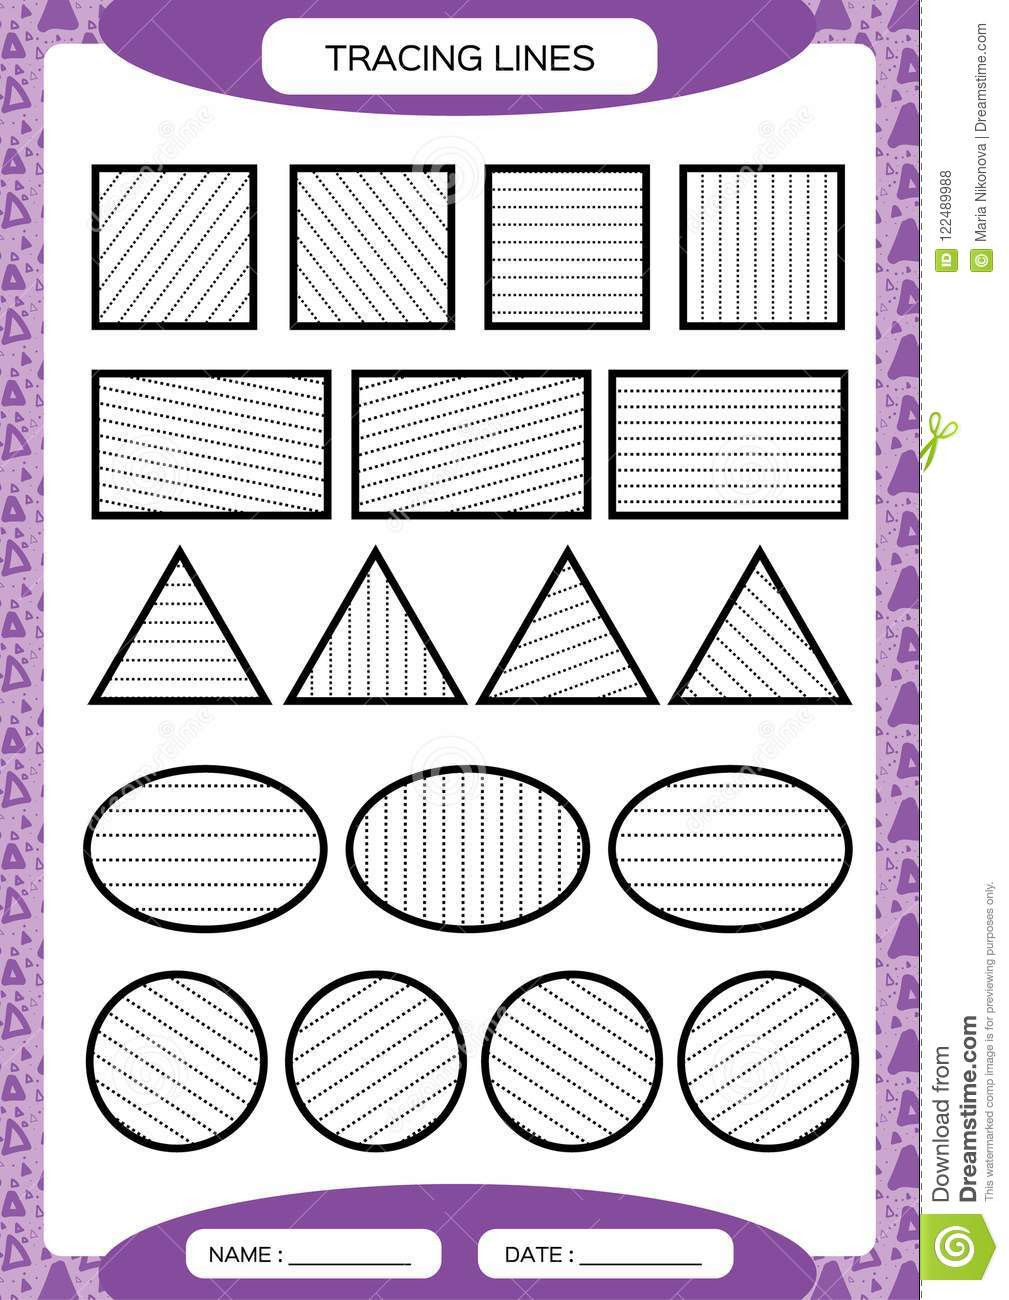 Fine Motor Skills Worksheets Tracing Lines Kids Education Preschool Worksheet Basic